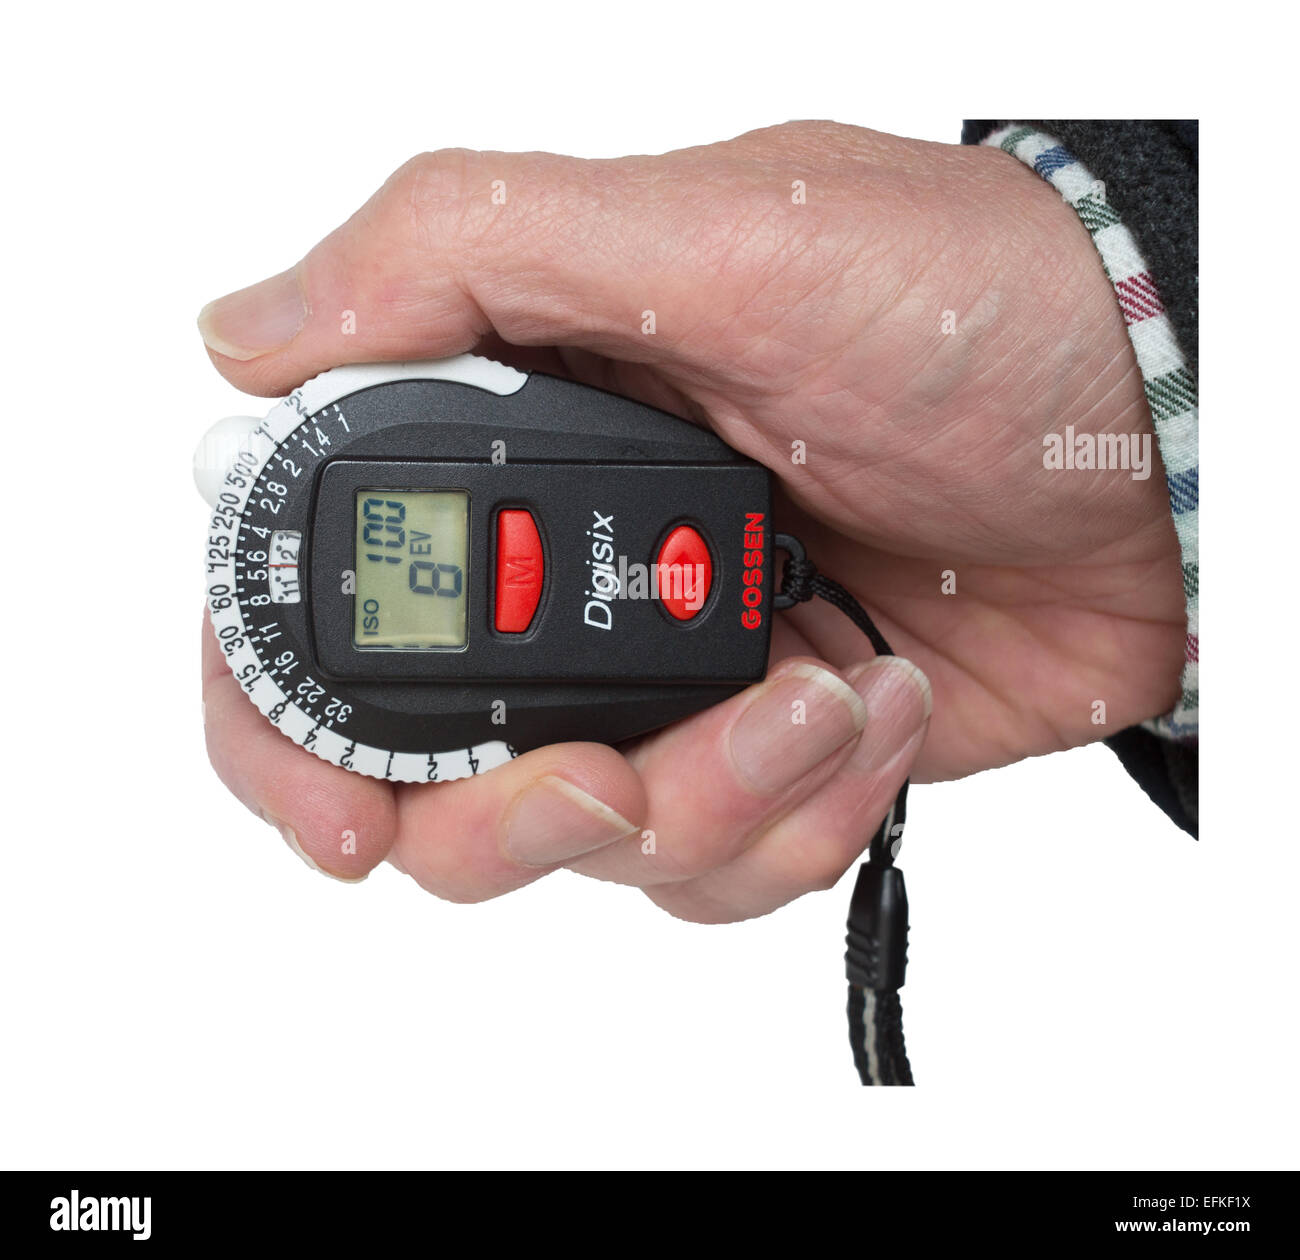 Man's hand holding a Gossen Digisix photographic light or exposure meter isolated on a white background. - Stock Image